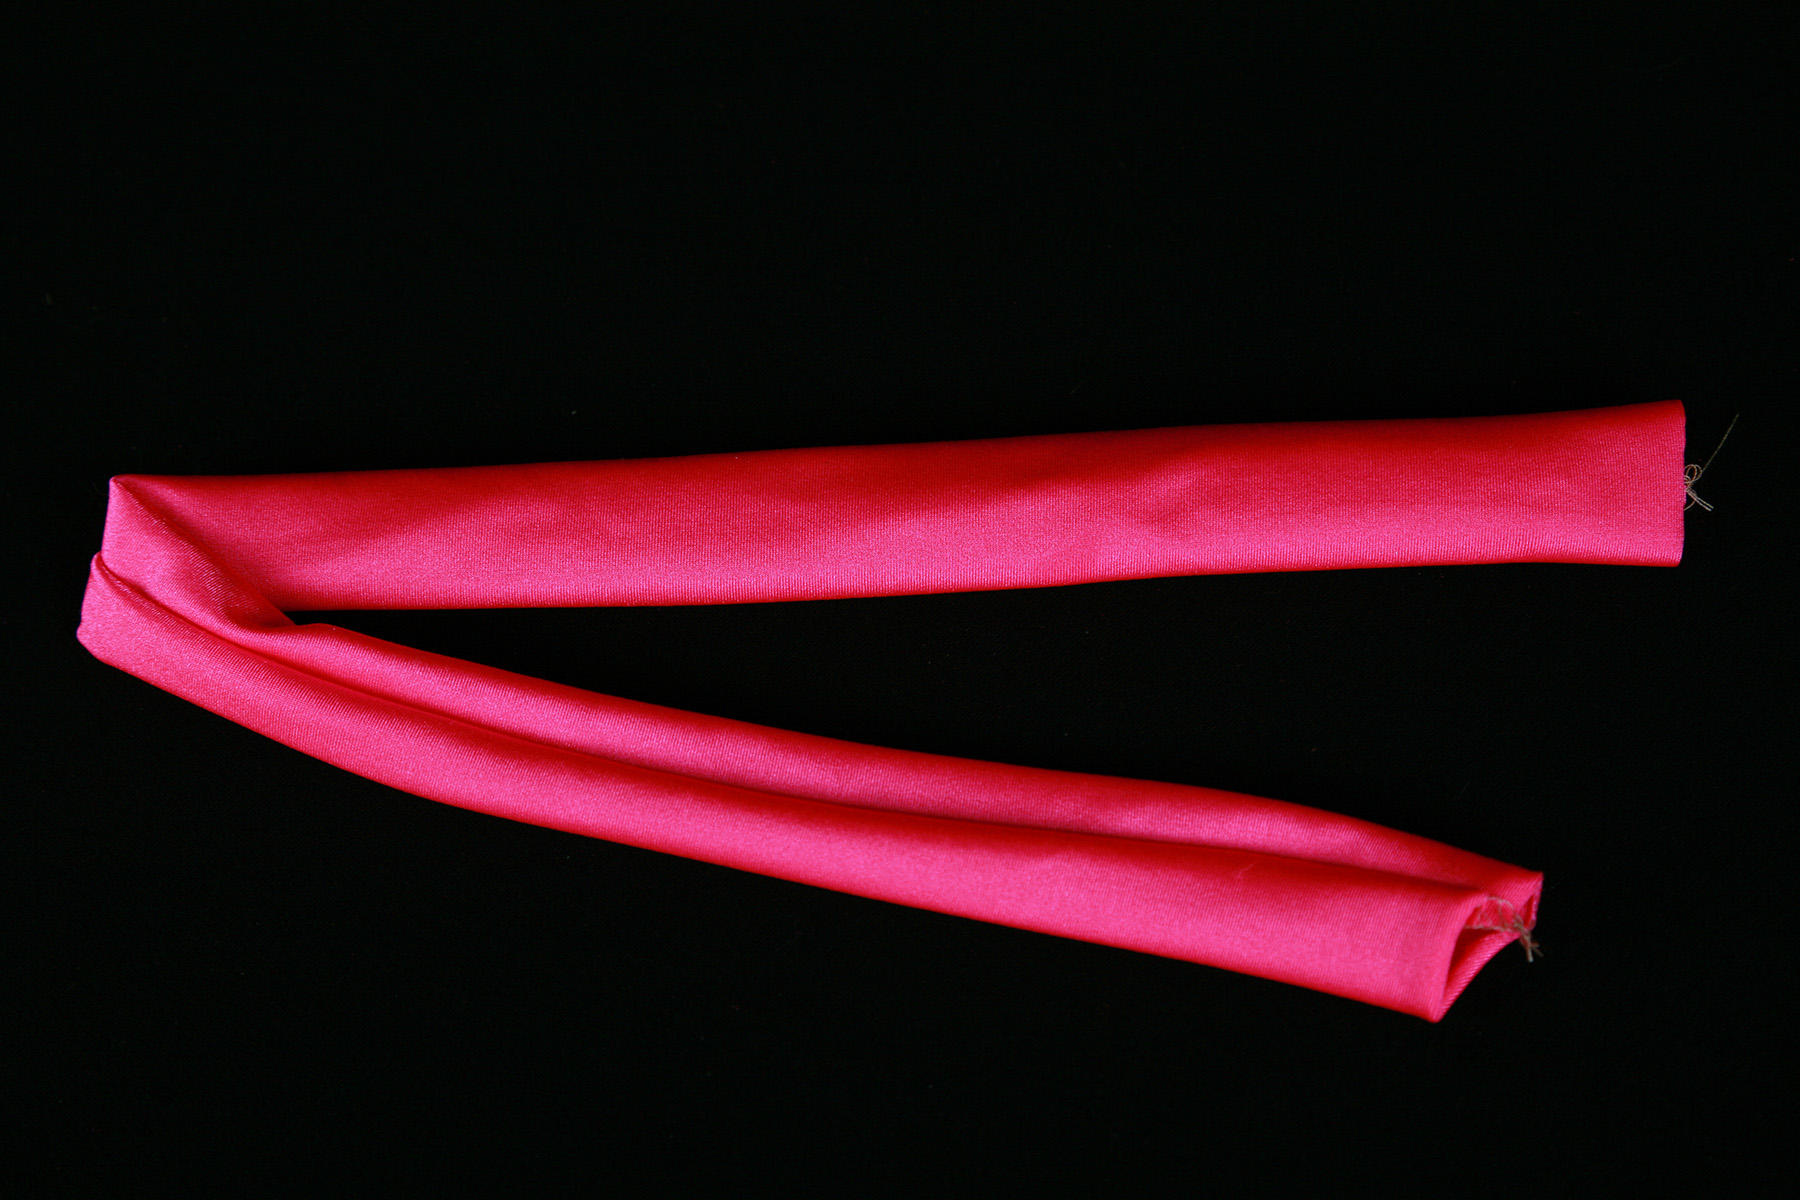 A tube of hot pink spandex is shown against a black background.